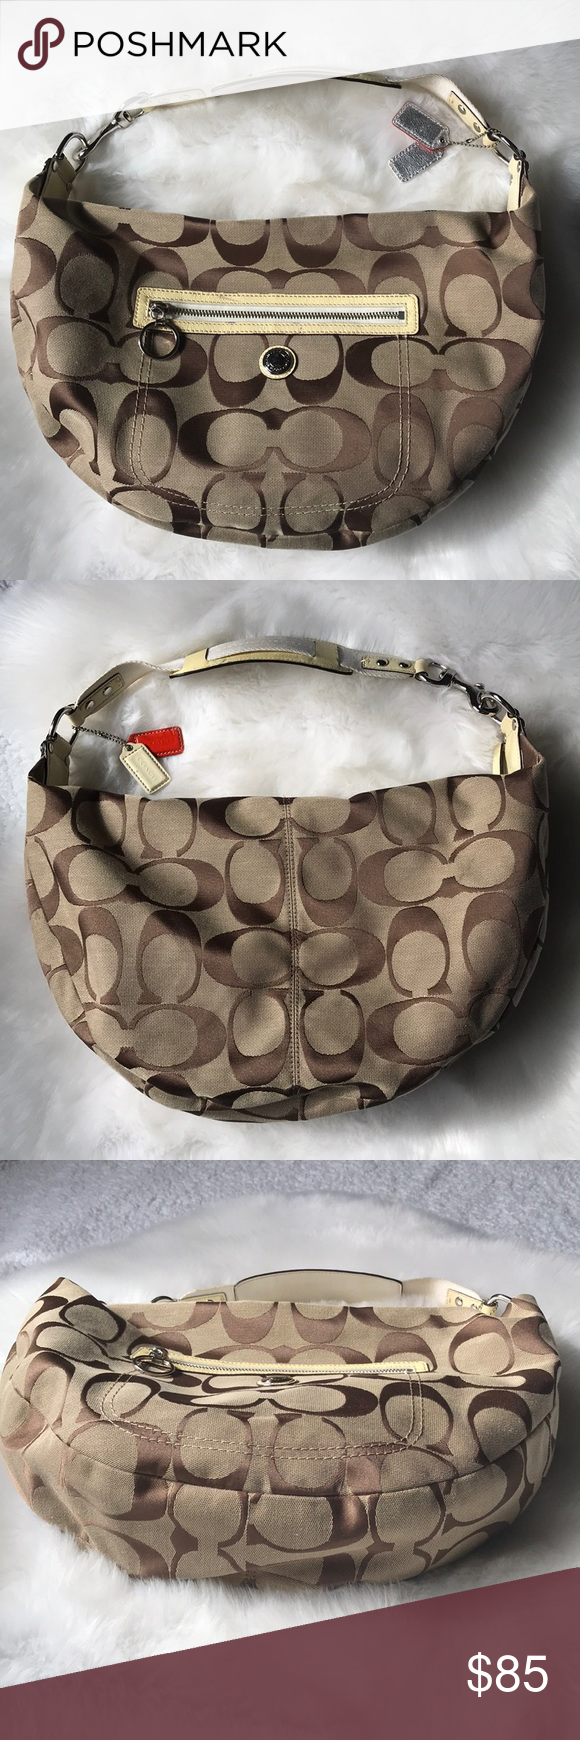 COACH Signature Blonde Coach Large Hobo Shoulder Preowned